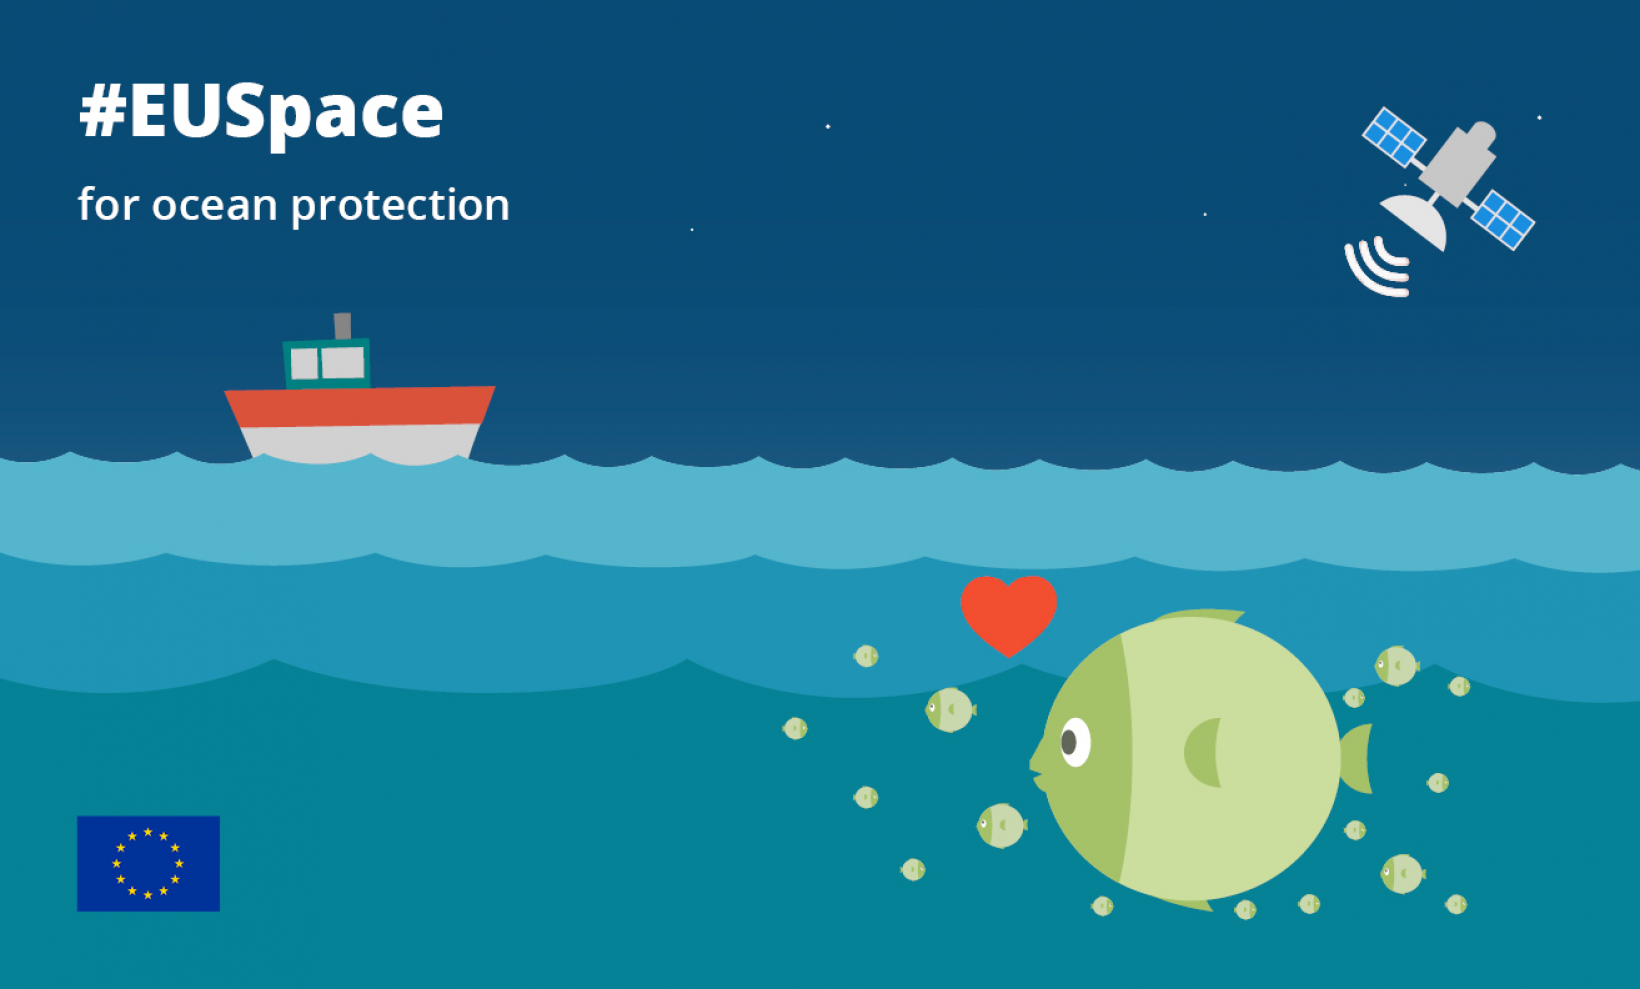 Galileo, EGNOS and Copernicus all contribute to making our seas and oceans safer and more sustainable